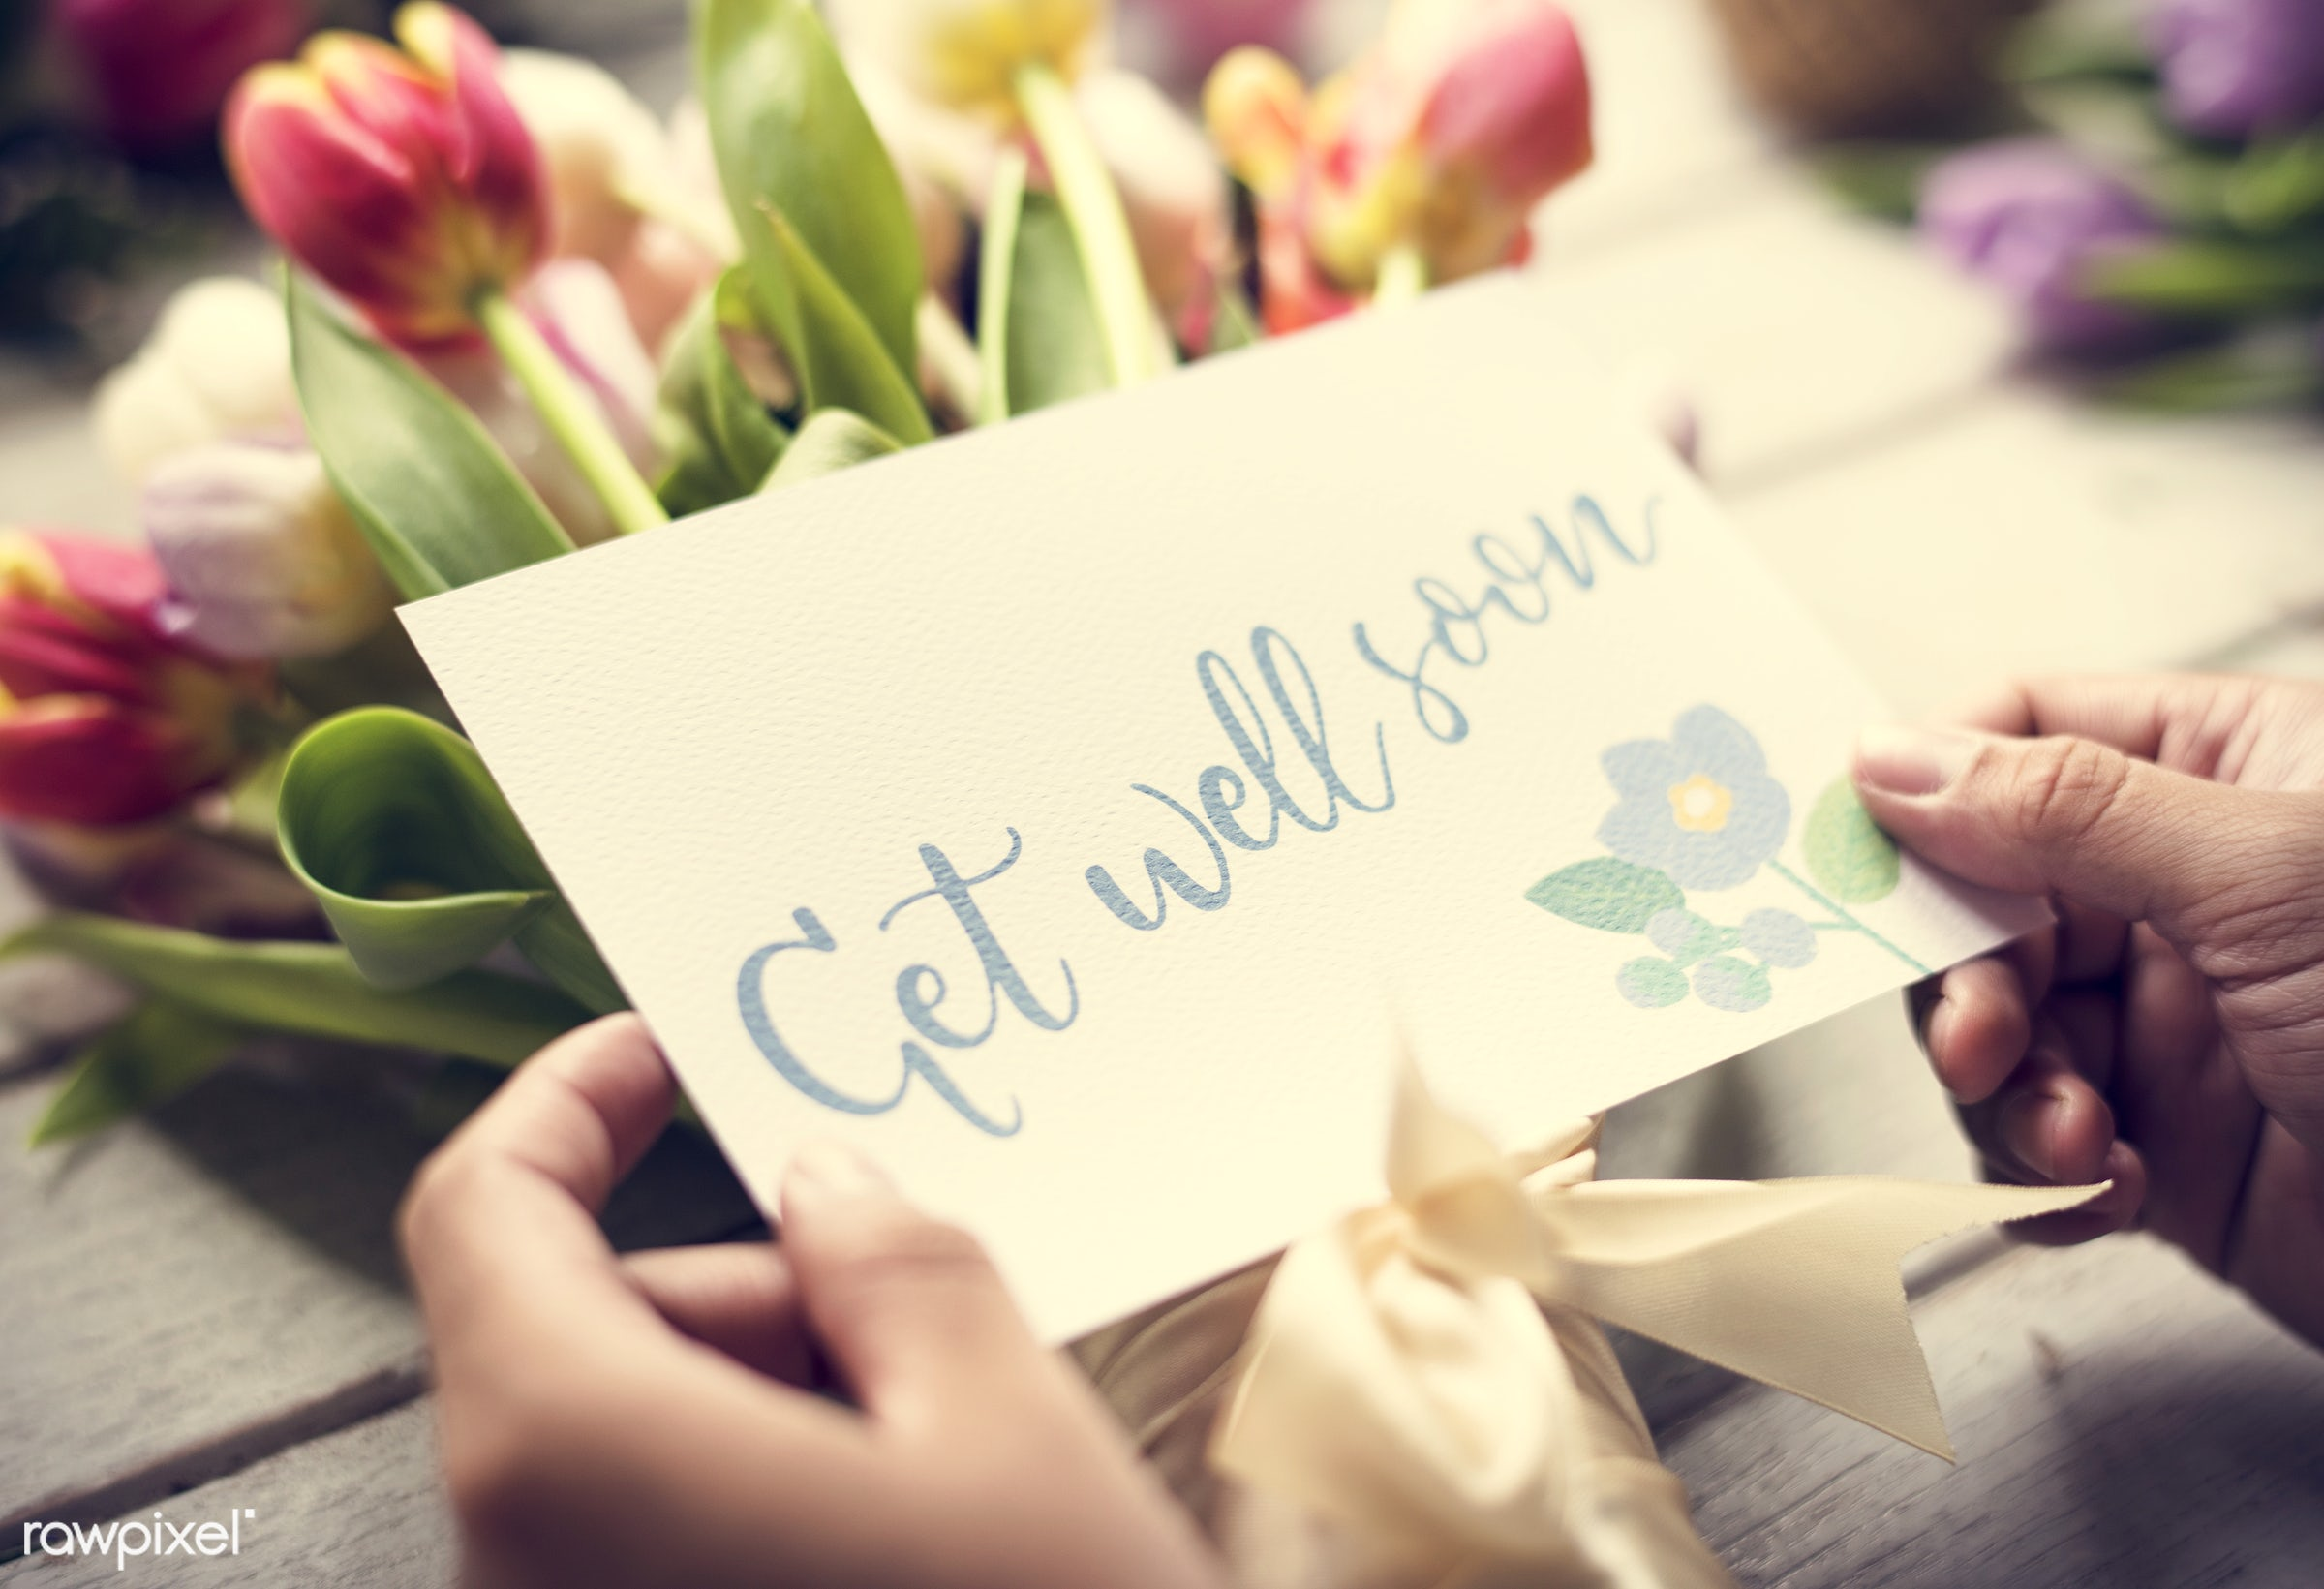 bouquet, detail, person, wish, show, people, decor, nature, card, flowers, get, greeting, hold, refreshment, florist,...